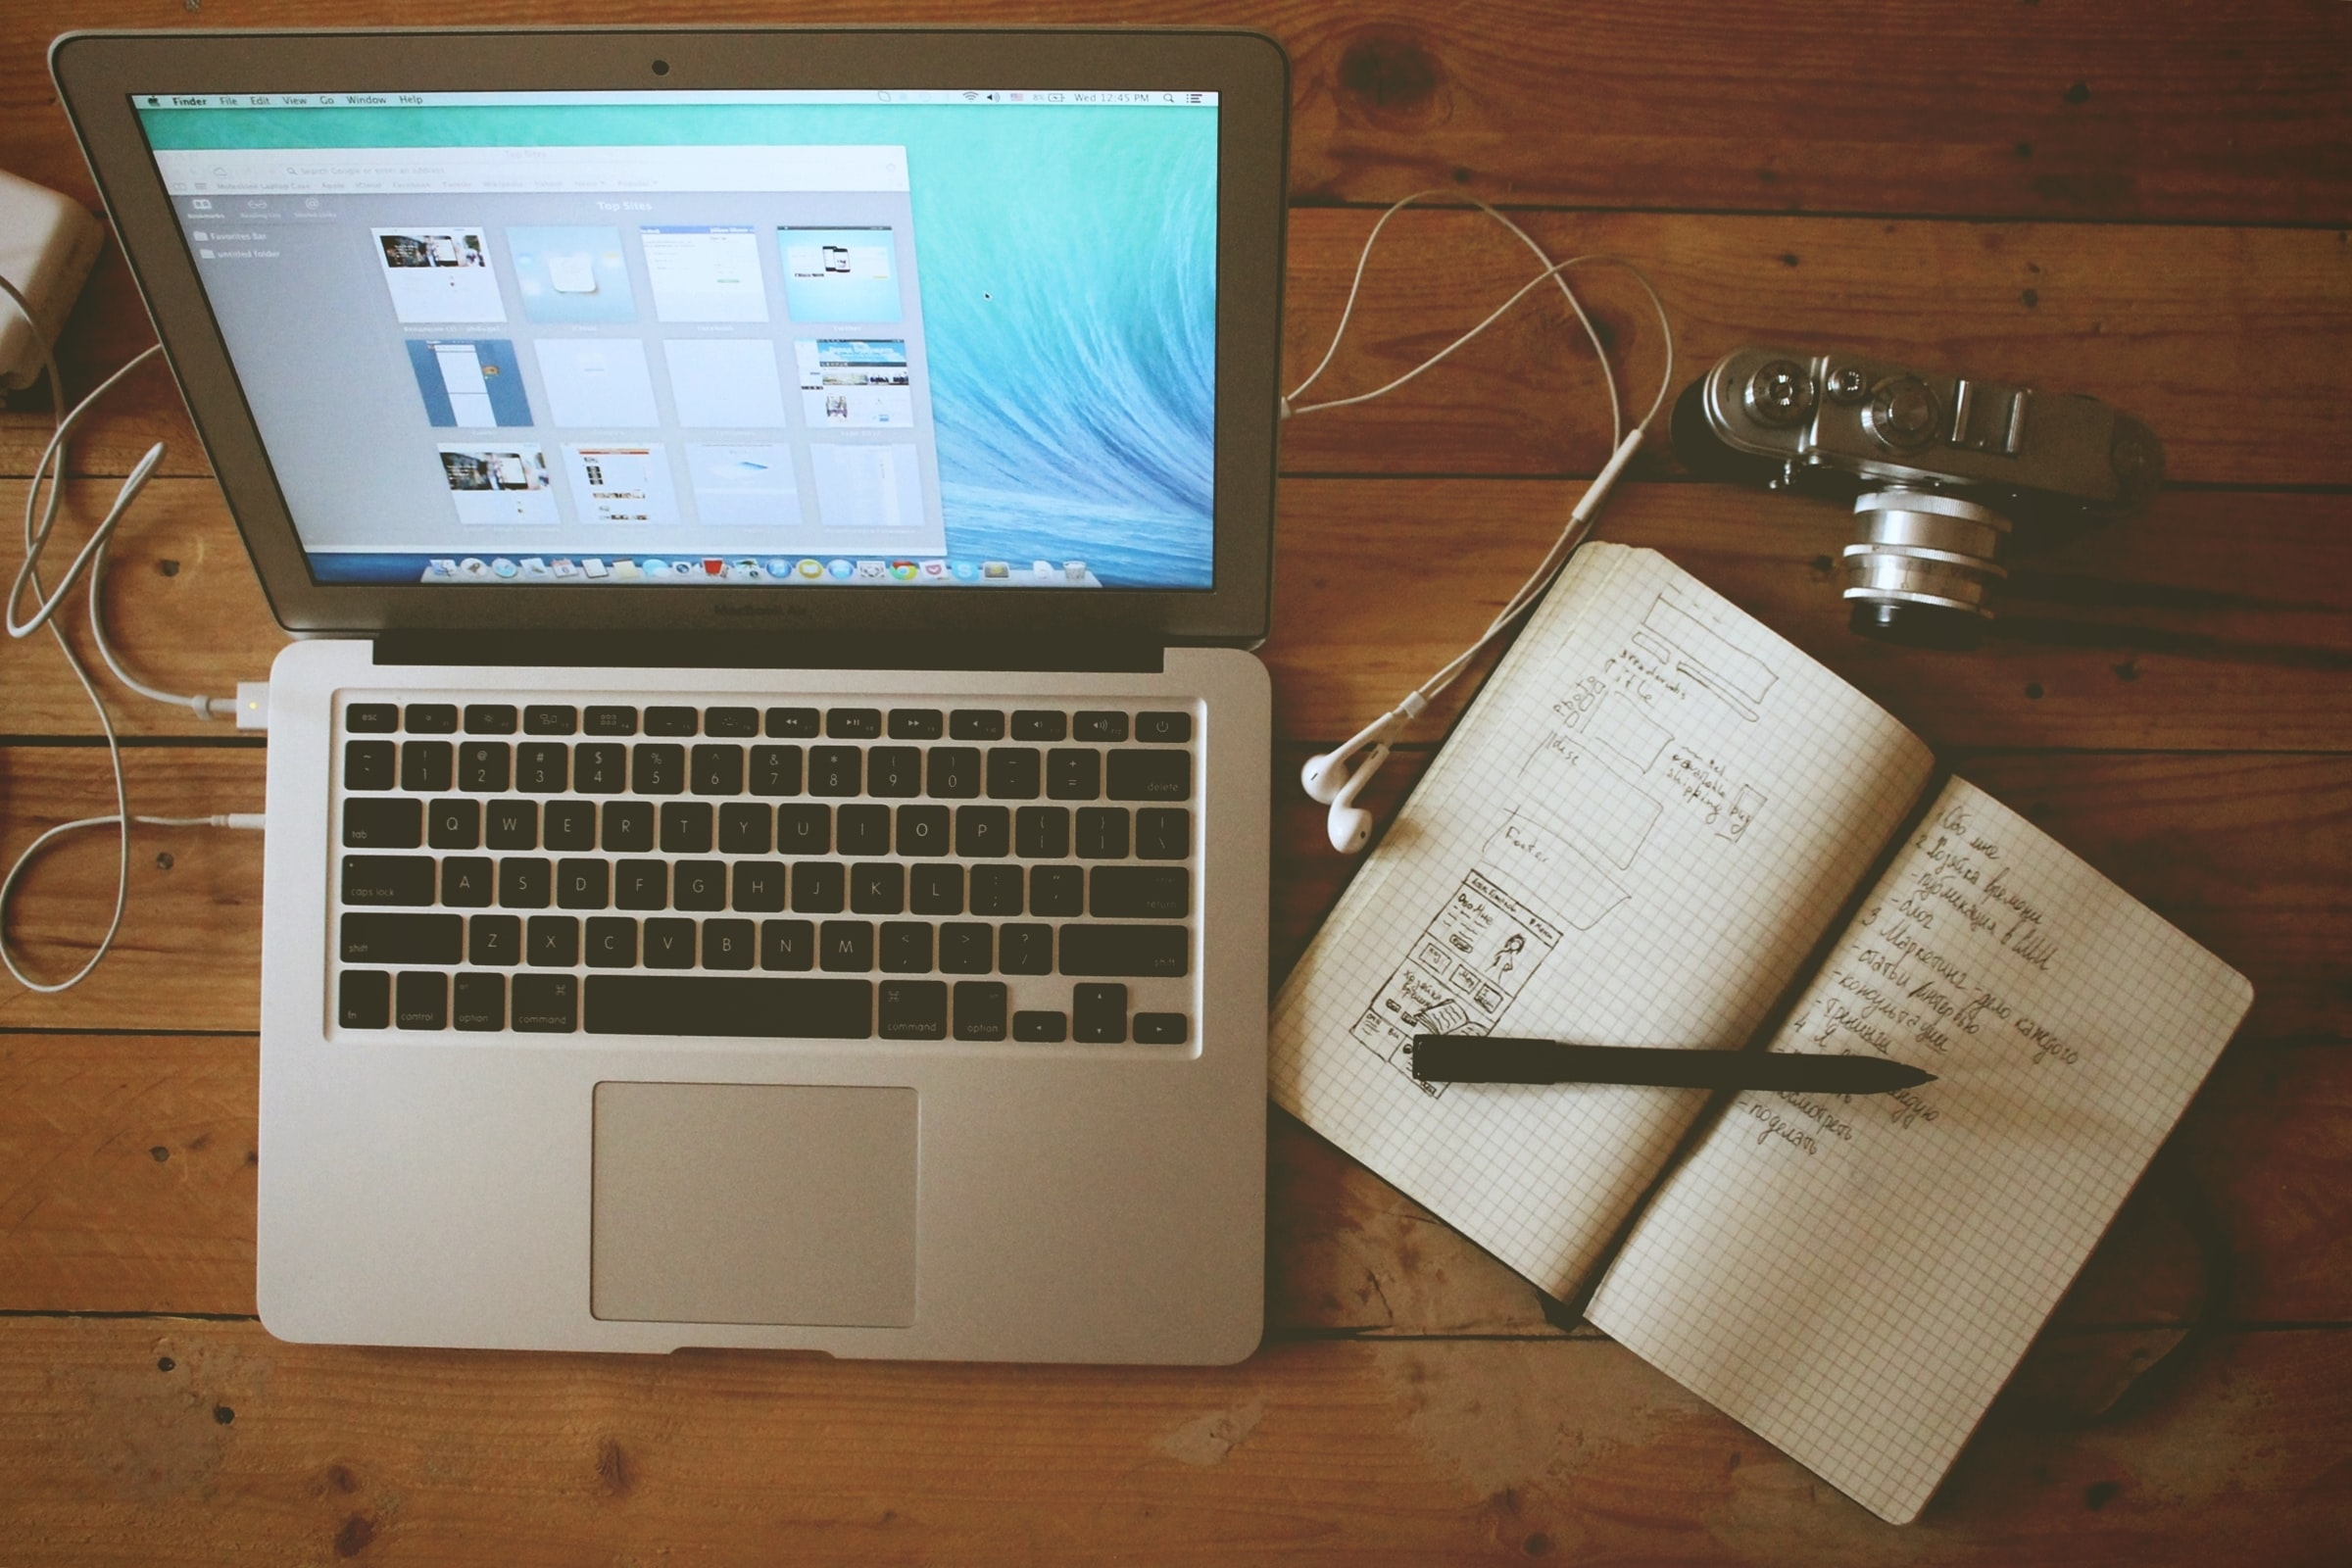 An overhead shot of a notebook and a pen next to a MacBook and a camera